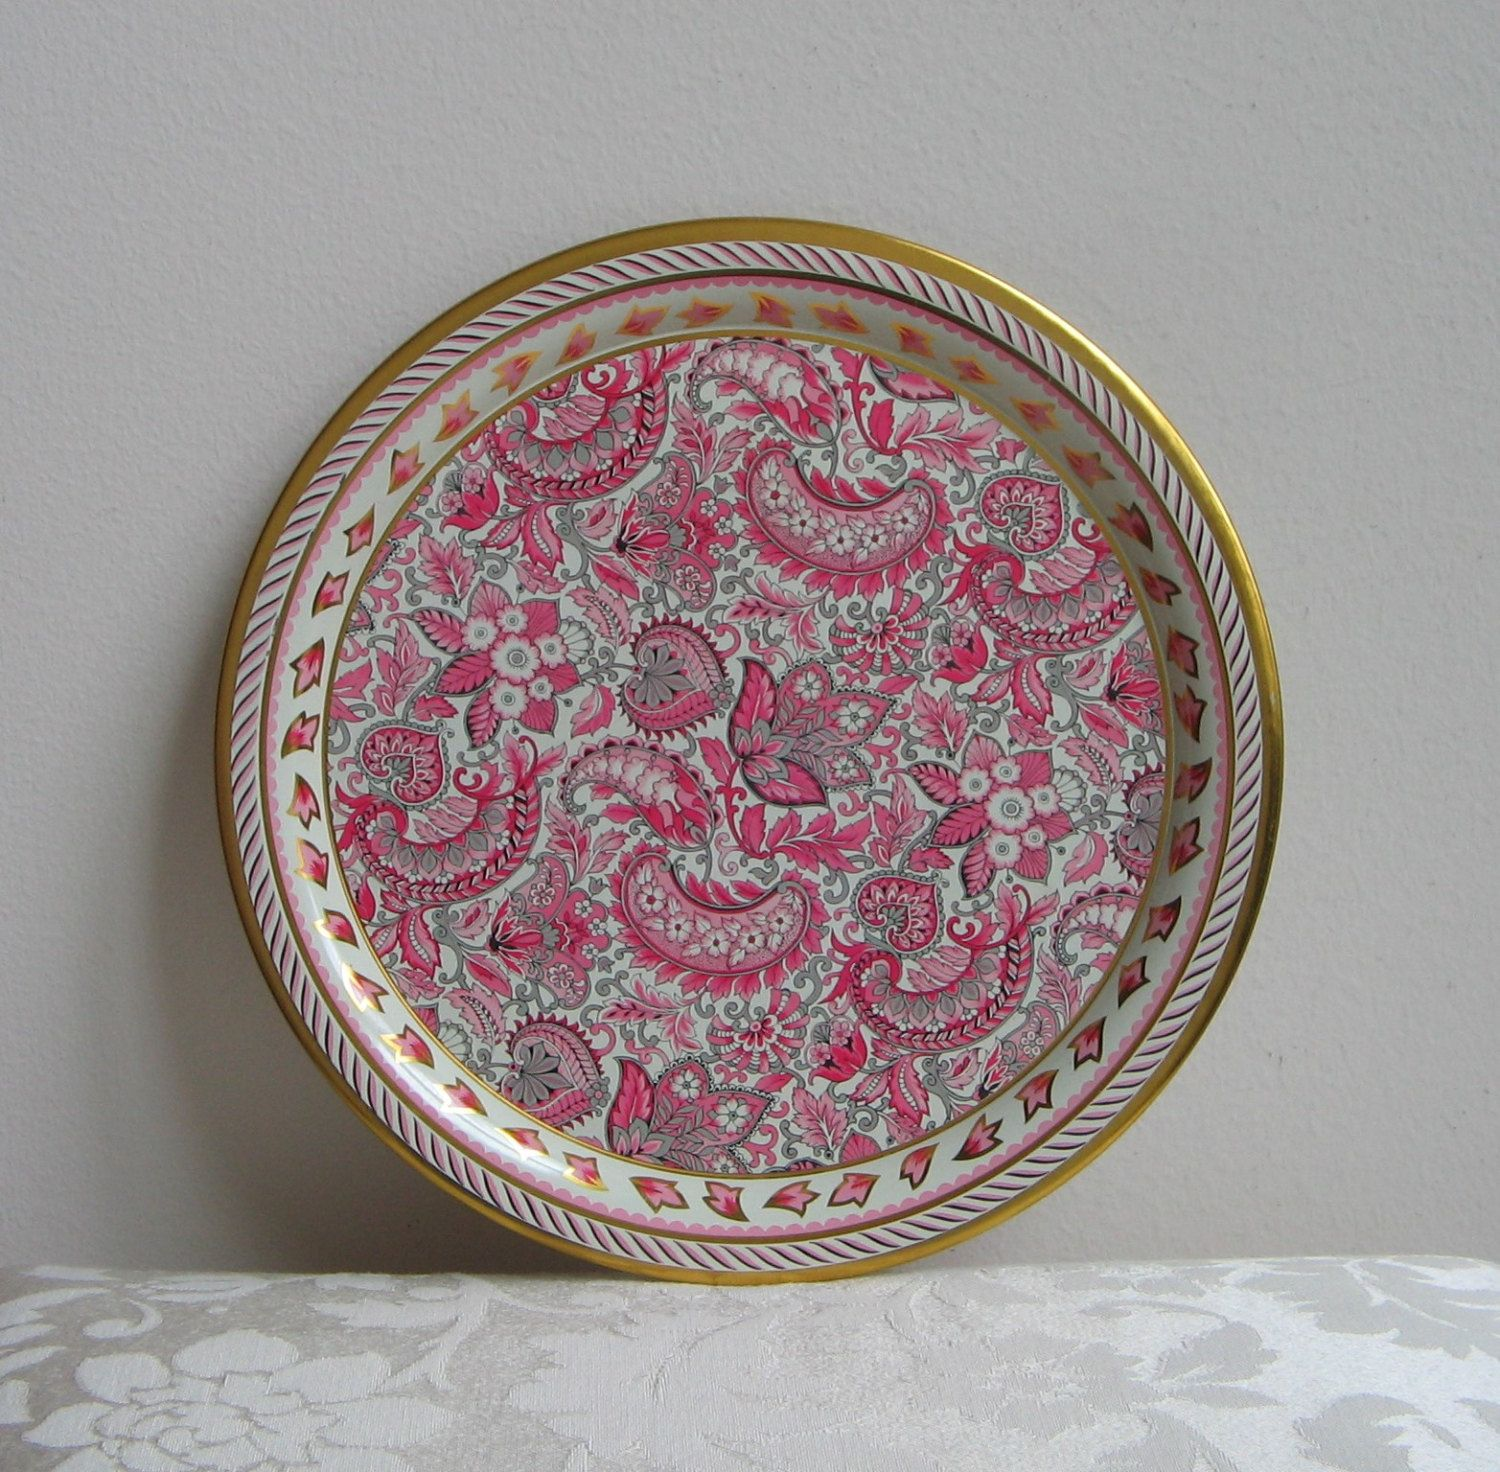 Daher Decorated Ware Tray Made In England Vintage Pink Metal Round Traydaher Decorated Ware Floral